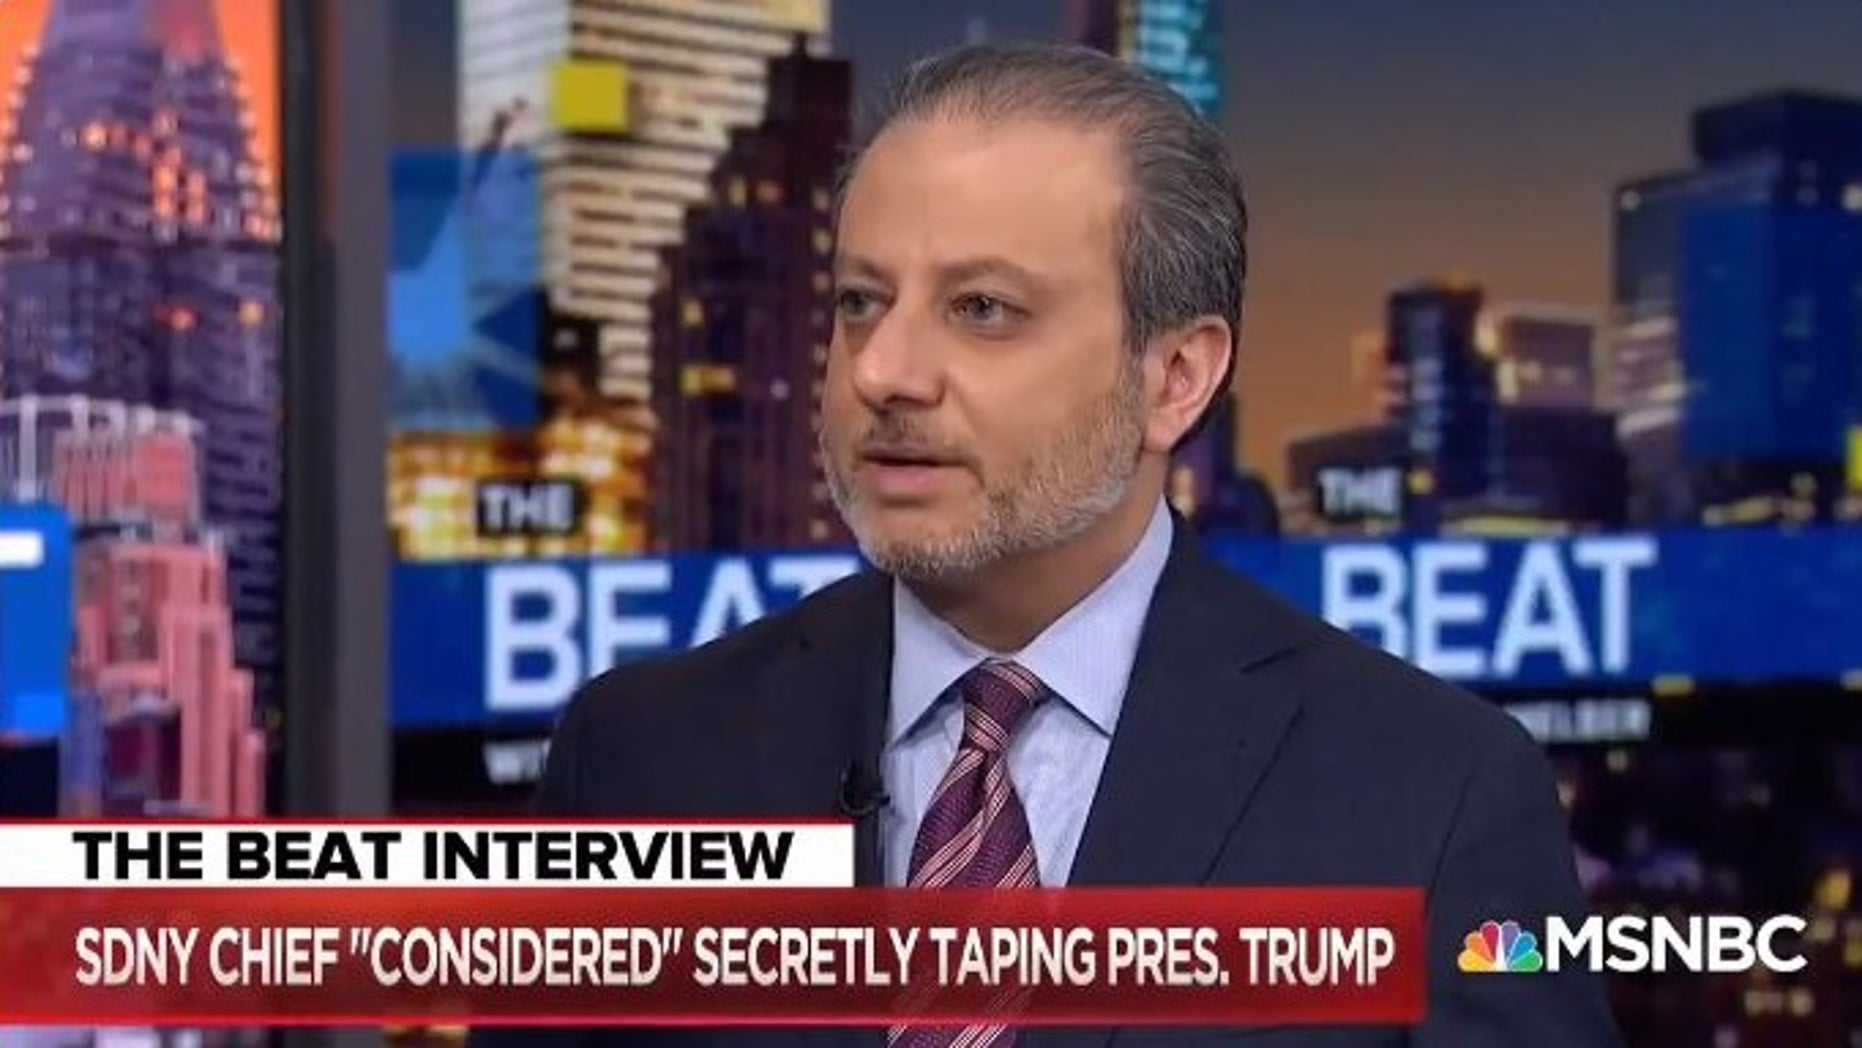 """Former U.S. Attorney Preet Bharara appeared on """"The Beat with Ari Melber"""" on MSNBC, saying he considered wearing a wire to tape the president."""